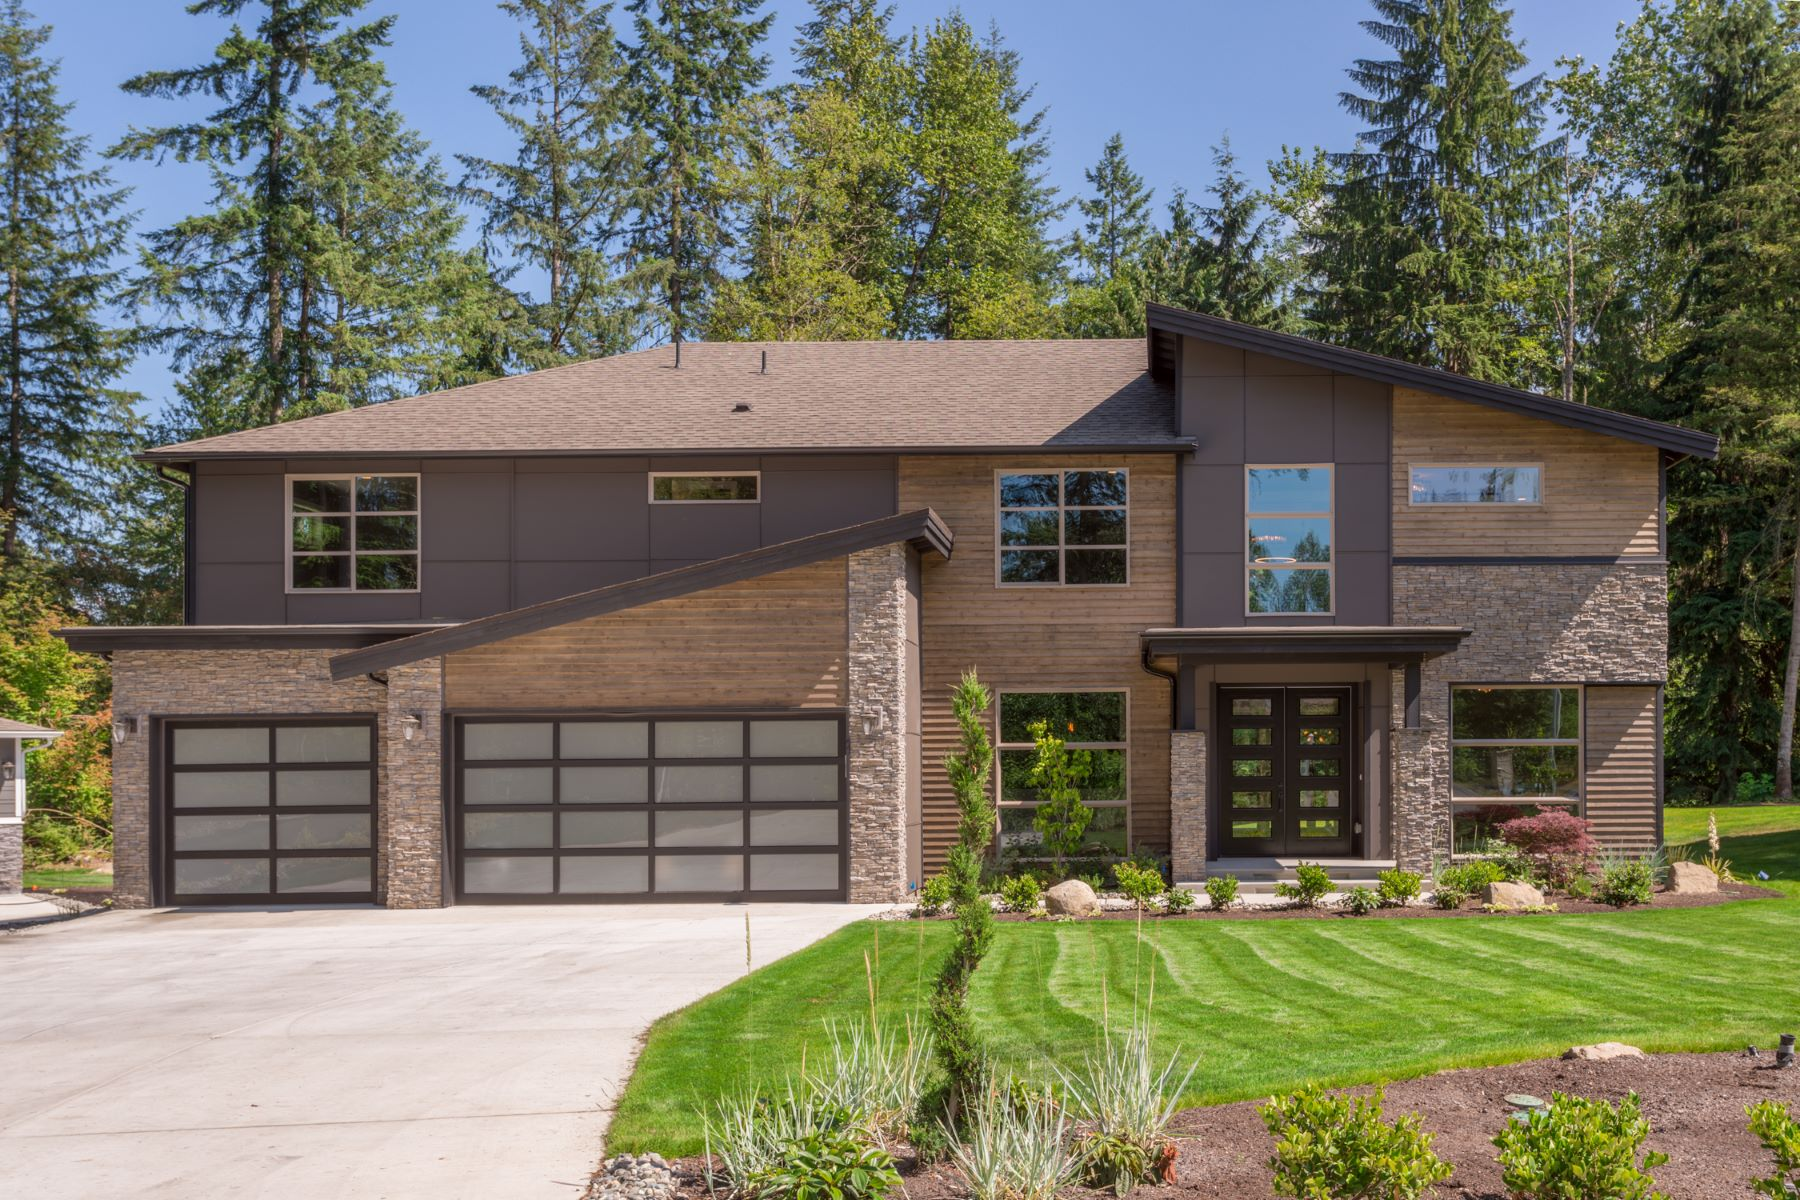 Single Family Home for Sale at Sophisticated Modern Living in Echo Lake 11408 207th St SE (Lot 9) Snohomish, Washington 98296 United States